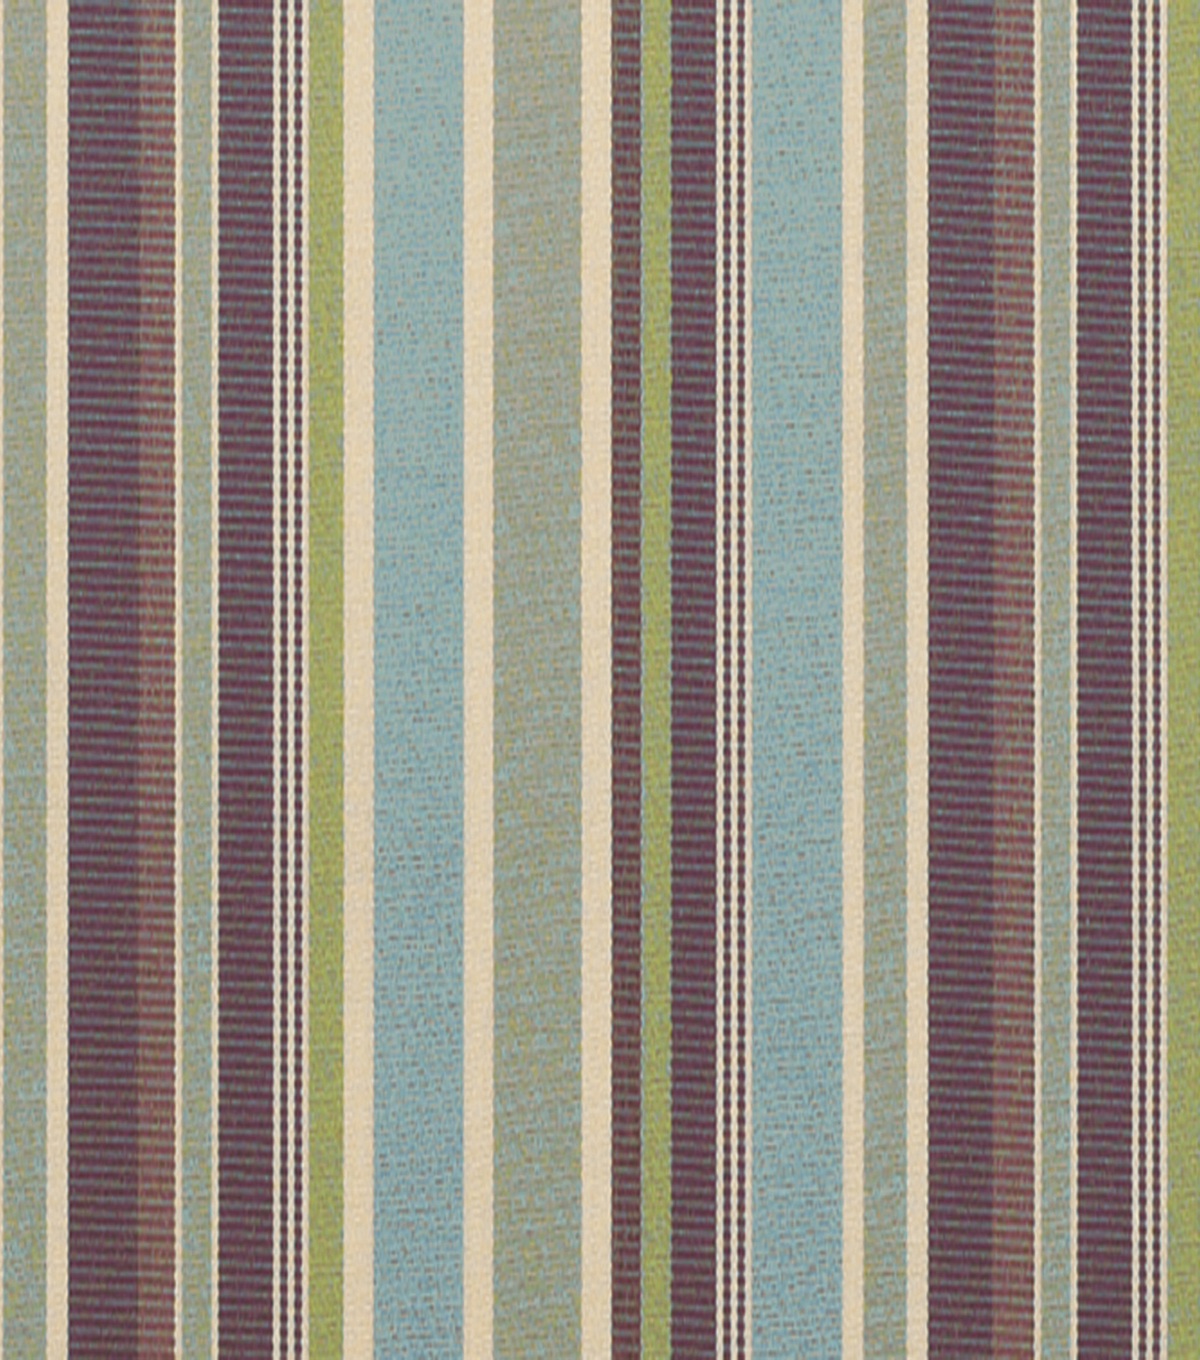 Sunbr Furn Stripes Brannon 5621 Wh Swatch